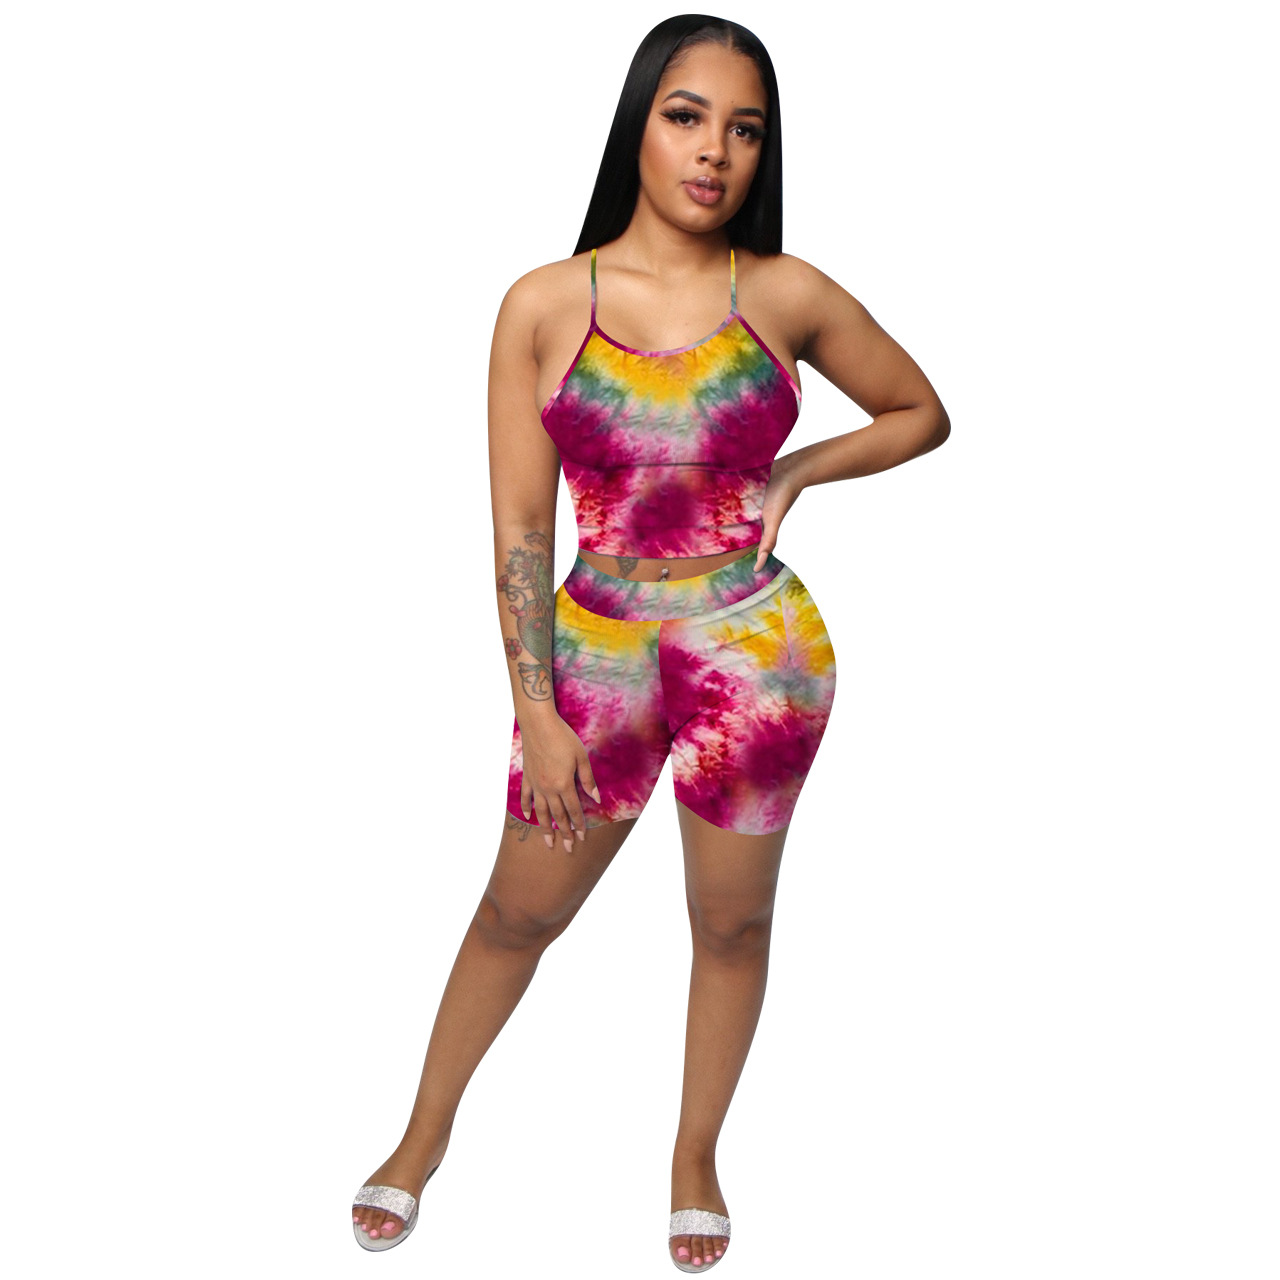 Details about  /Woman Mask Suit Colorfull Tie Dye Printed Sleeveless Crop Vest+Shorts Pant